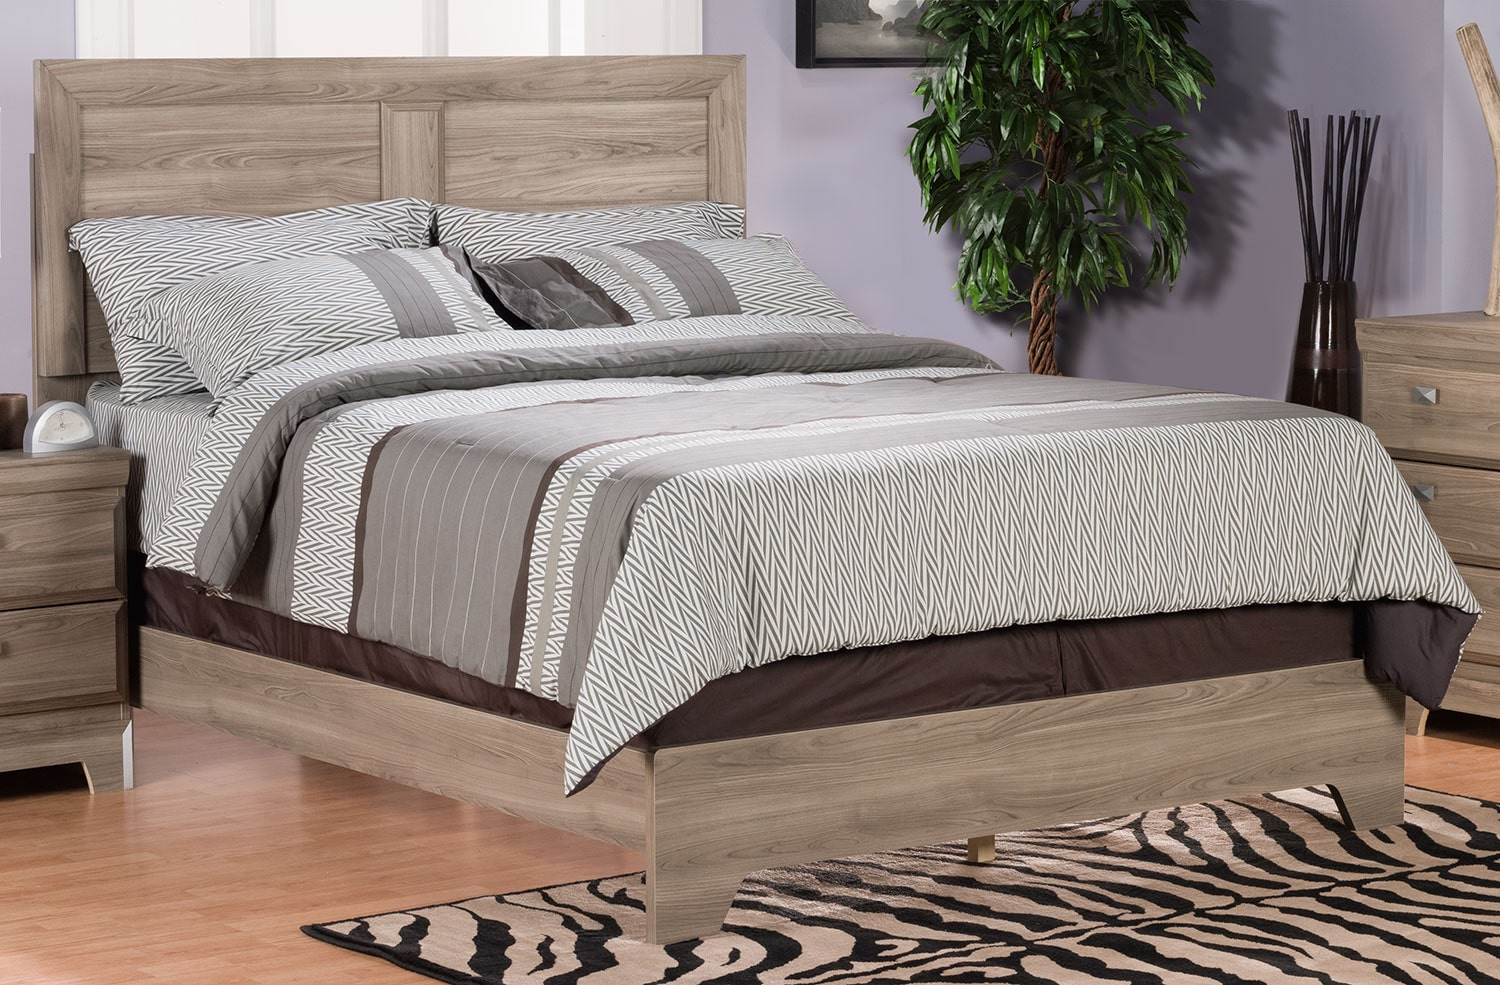 Bedroom Furniture - Yorkdale Light Queen Panel Bed